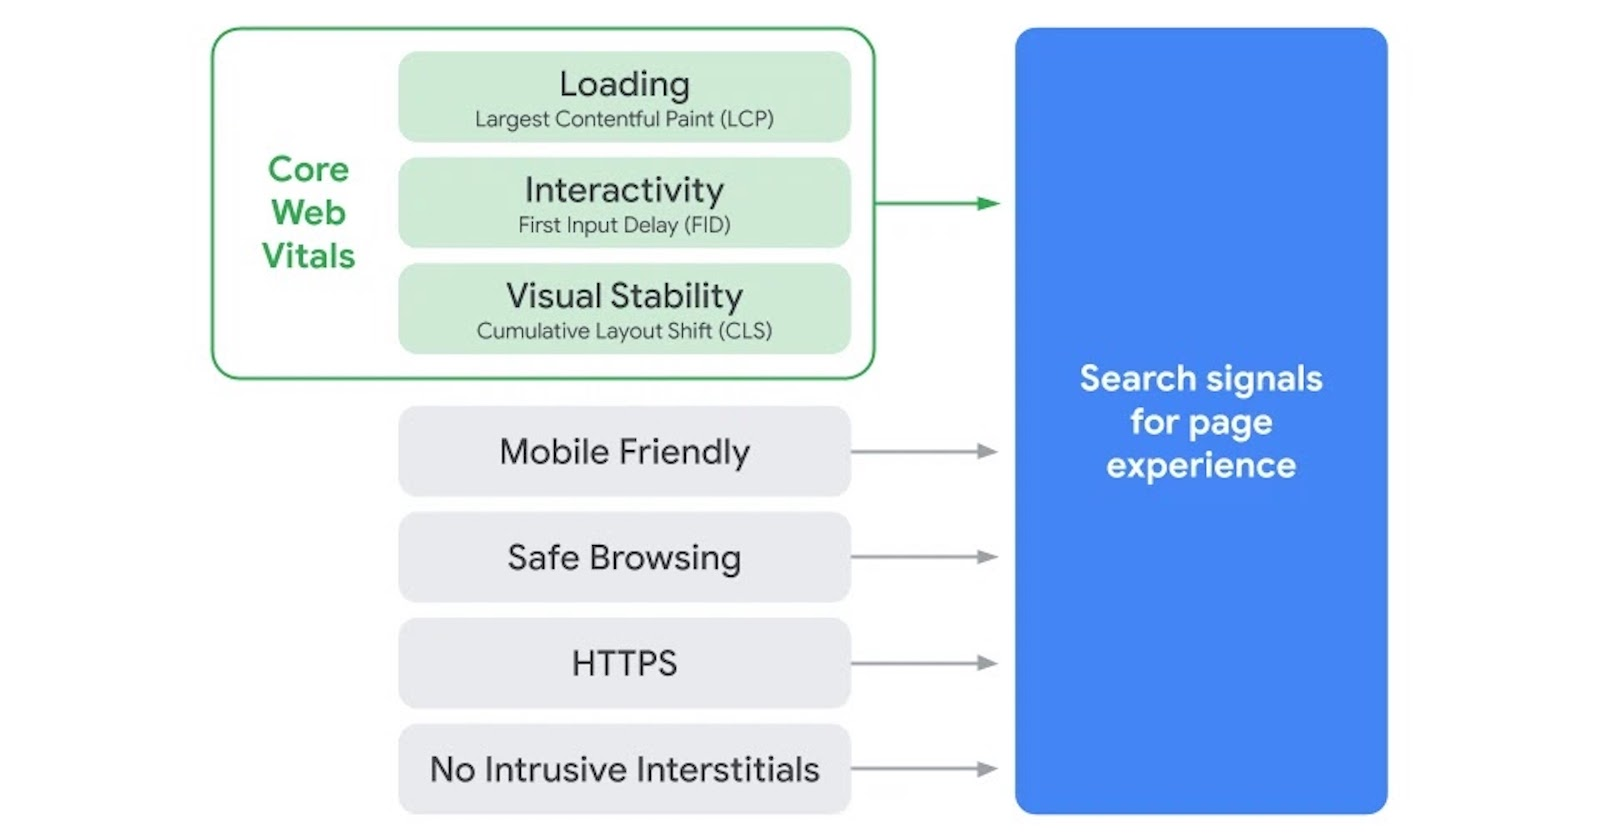 Google�s Core Web Vitals to Become Ranking Signals - Search Engine Journal